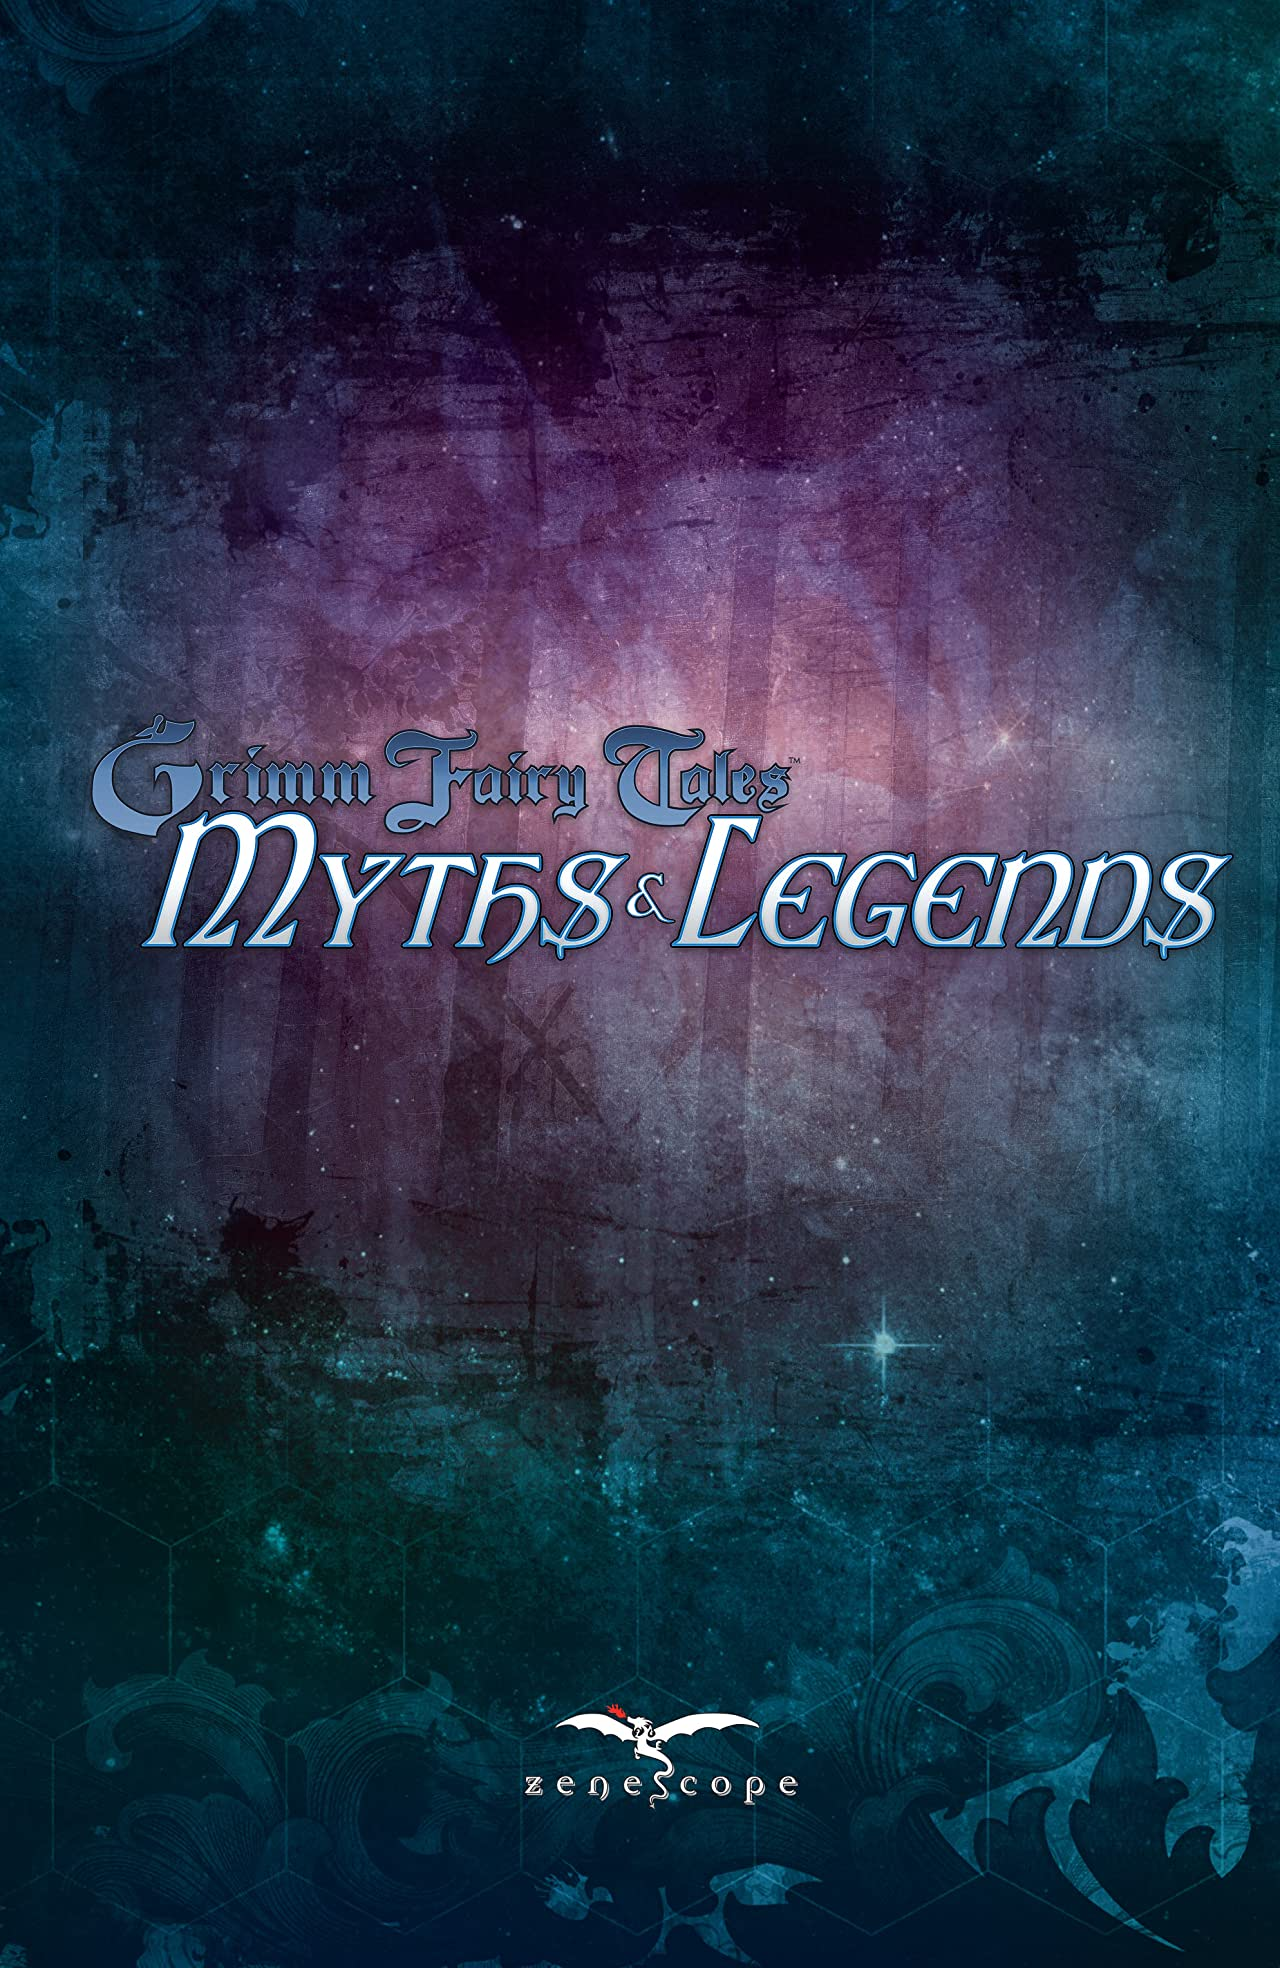 Myths & Legends Vol. 5